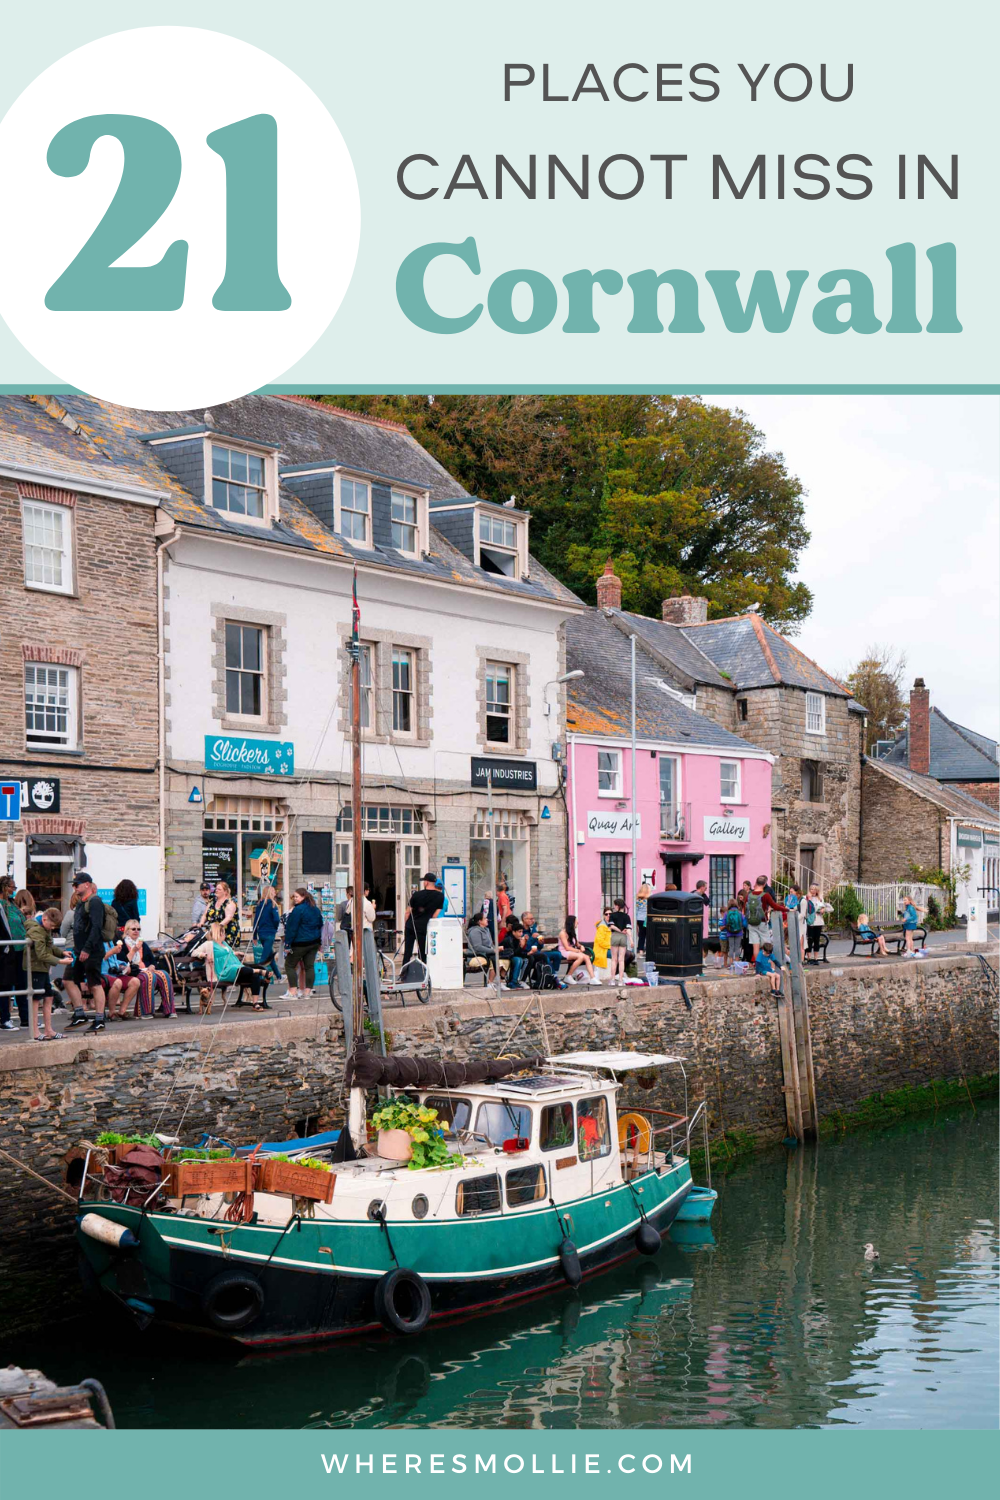 21 things to do in Cornwall, England